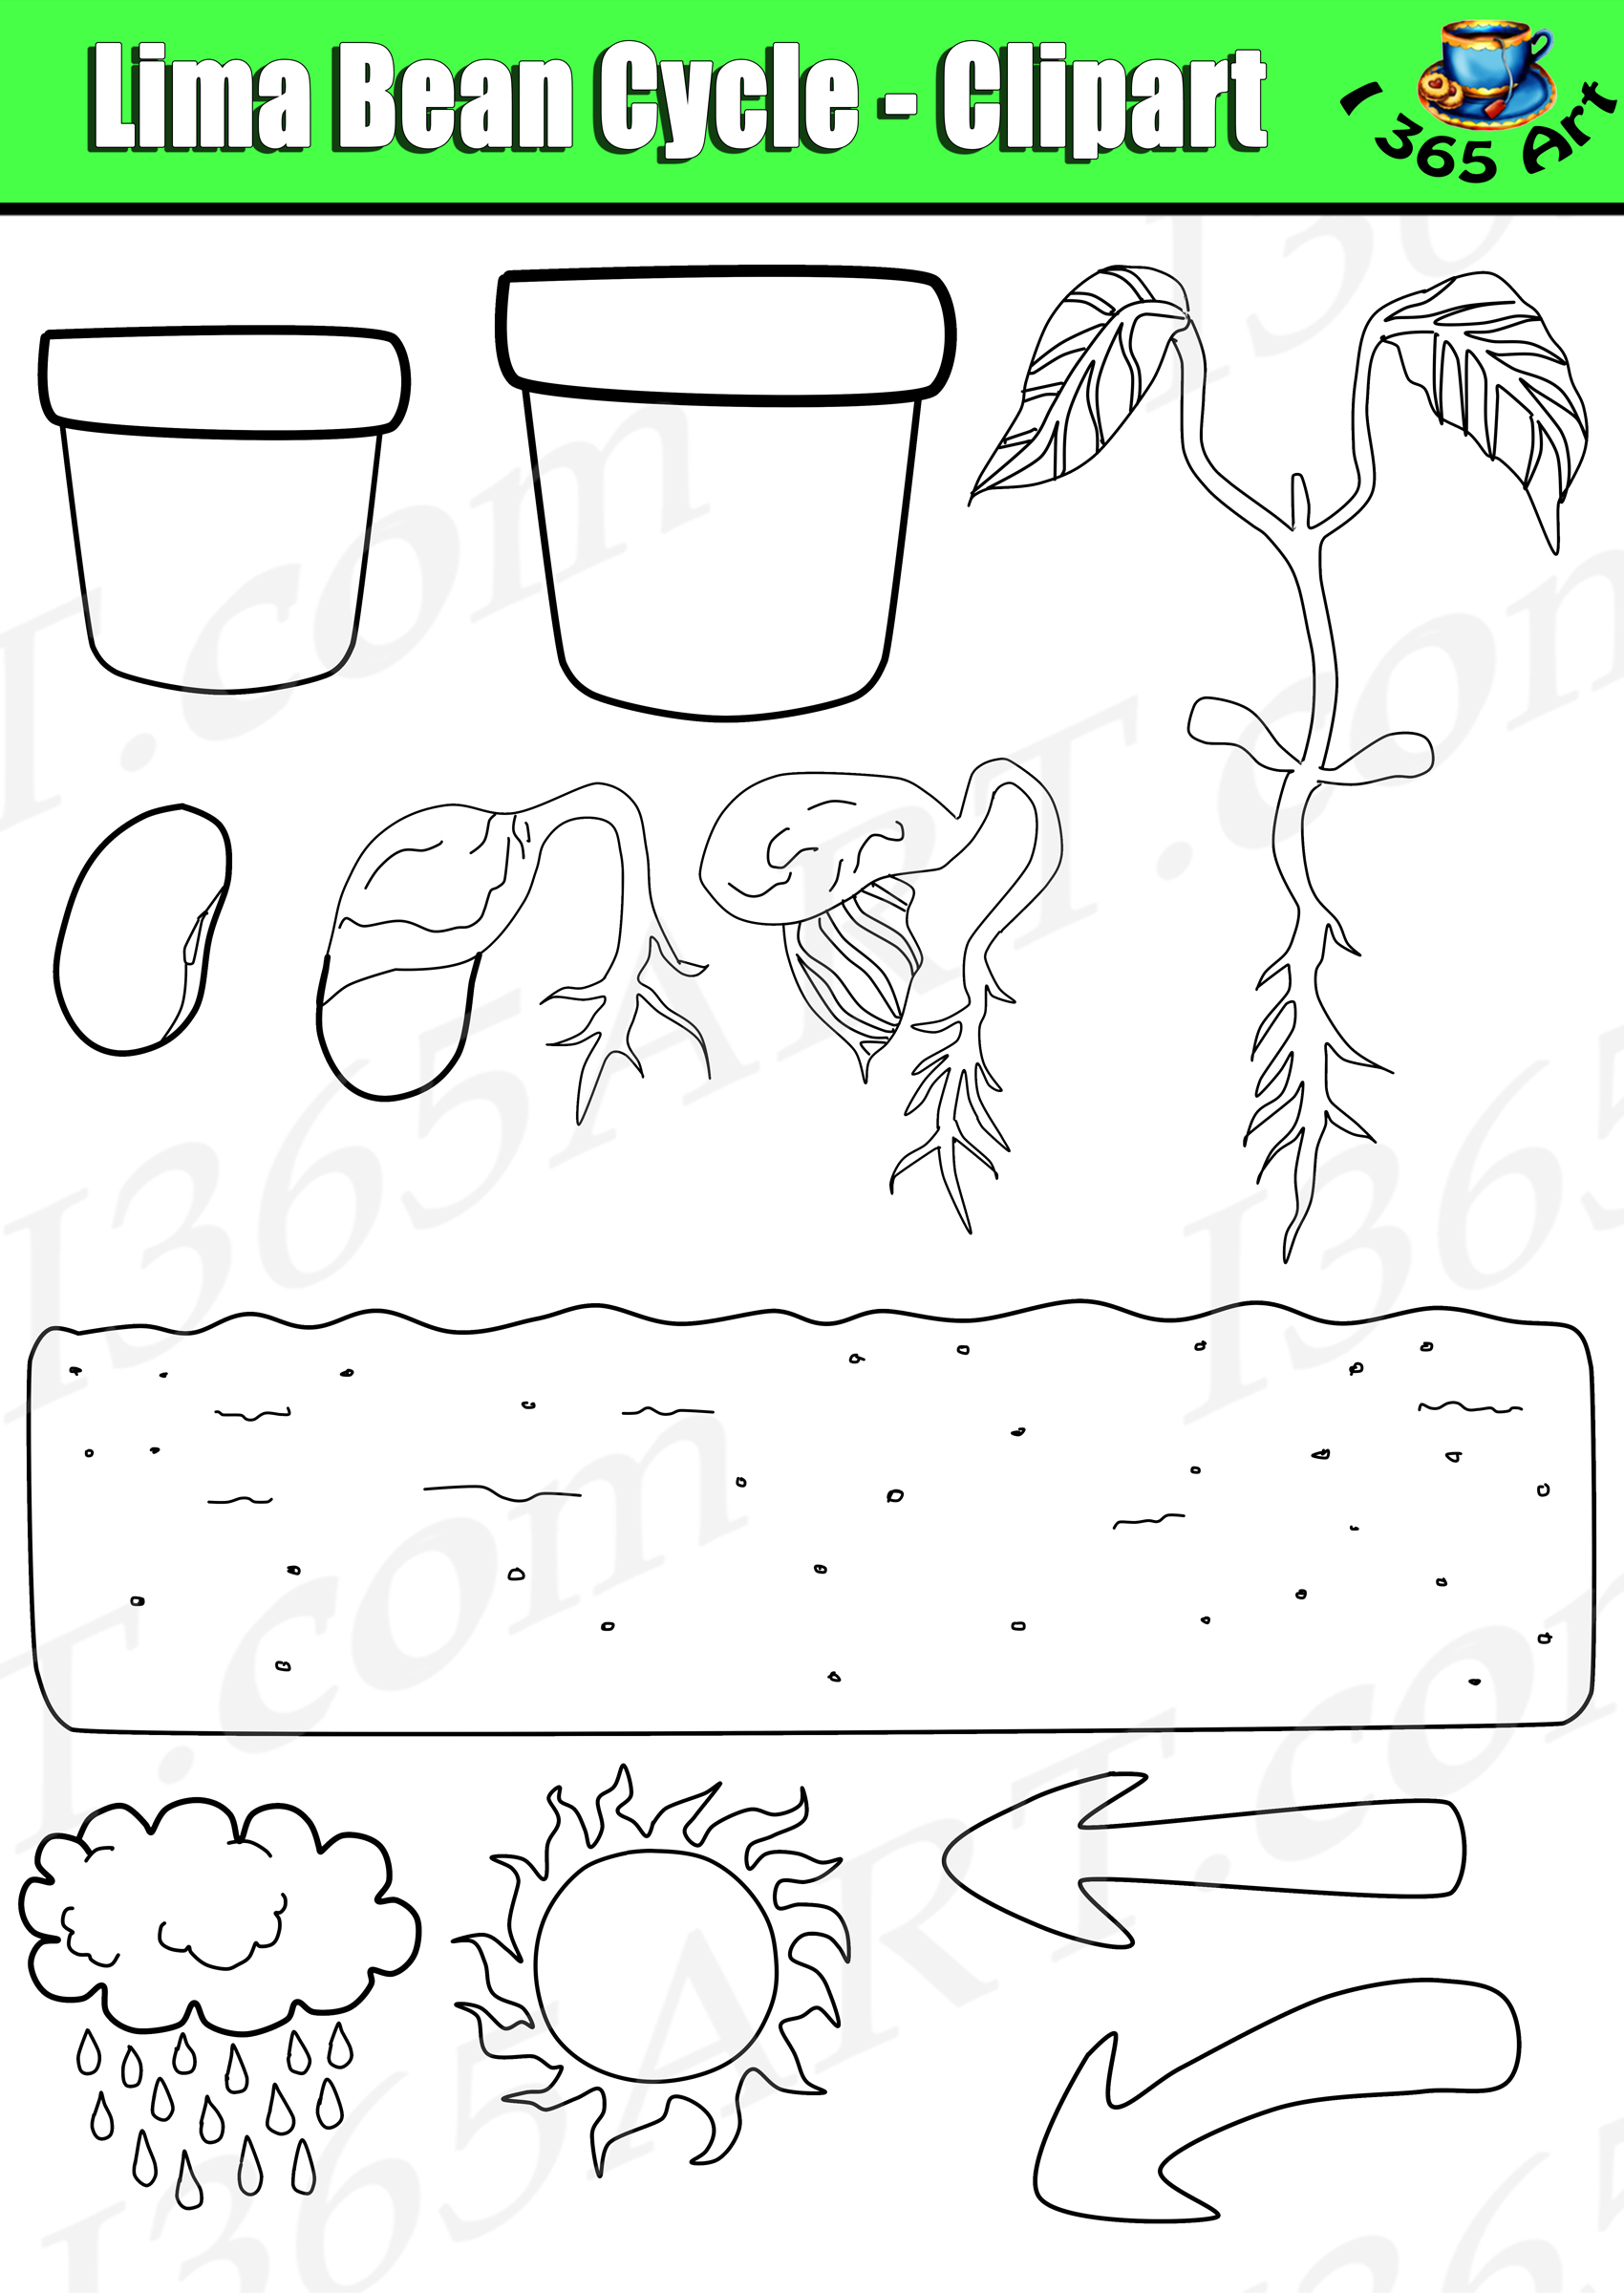 Plant Life Cycle Clipart